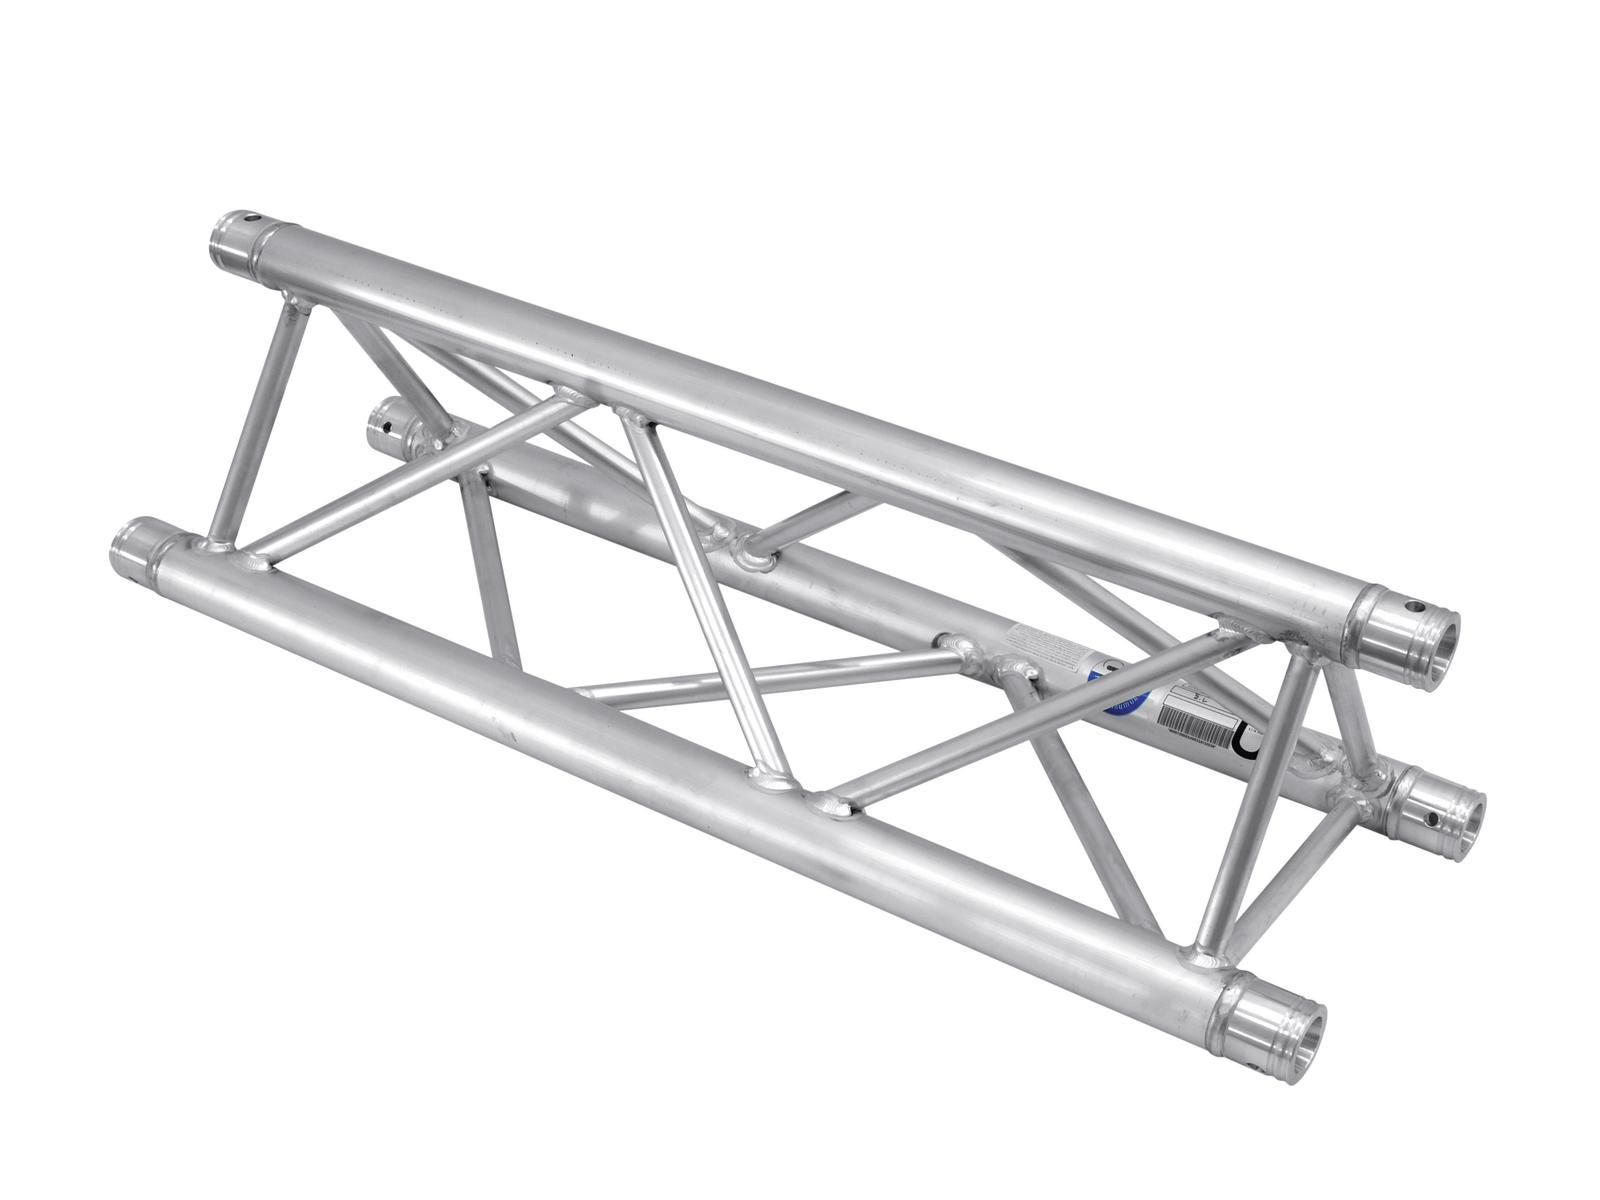 ALUTRUSS TRILOCK E-GL33 3000 a 3 vie traverse